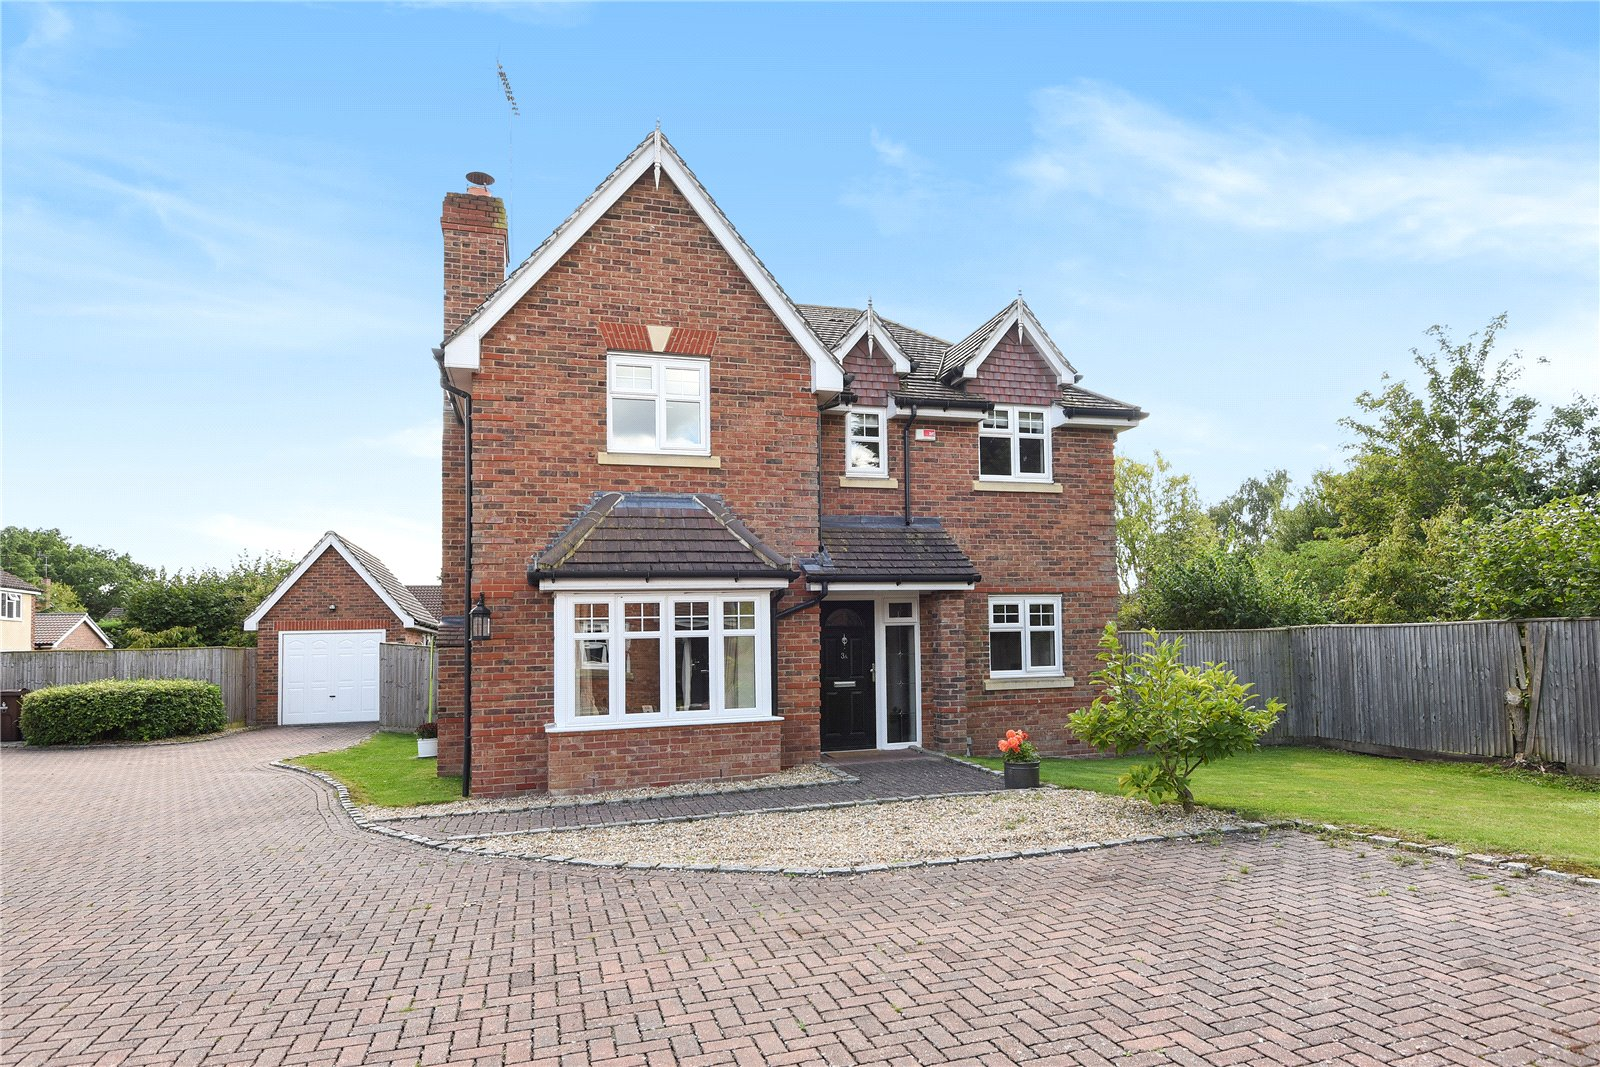 4 Bedrooms Detached House for sale in St Marys Road, Sindlesham, Wokingham, Berkshire, RG41